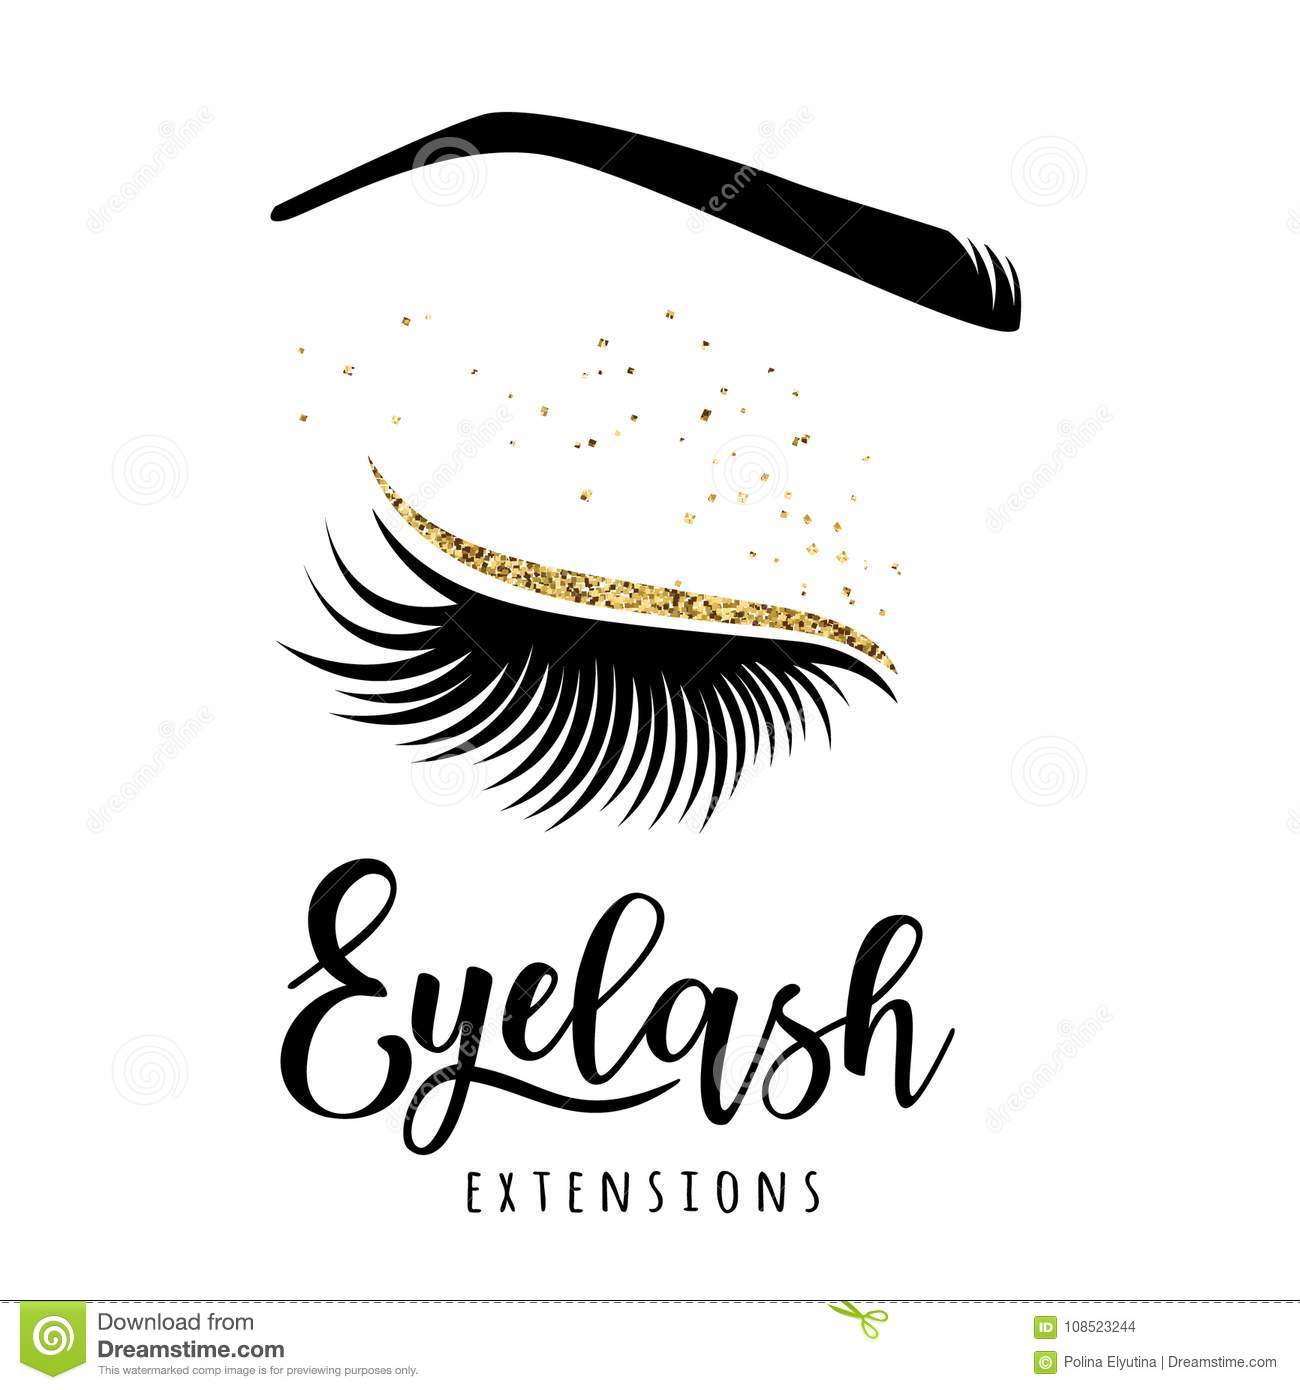 ff11e39e2cb Eyelash extensions logo. Vector illustration of lashes. For beauty salon,  lash extensions maker.